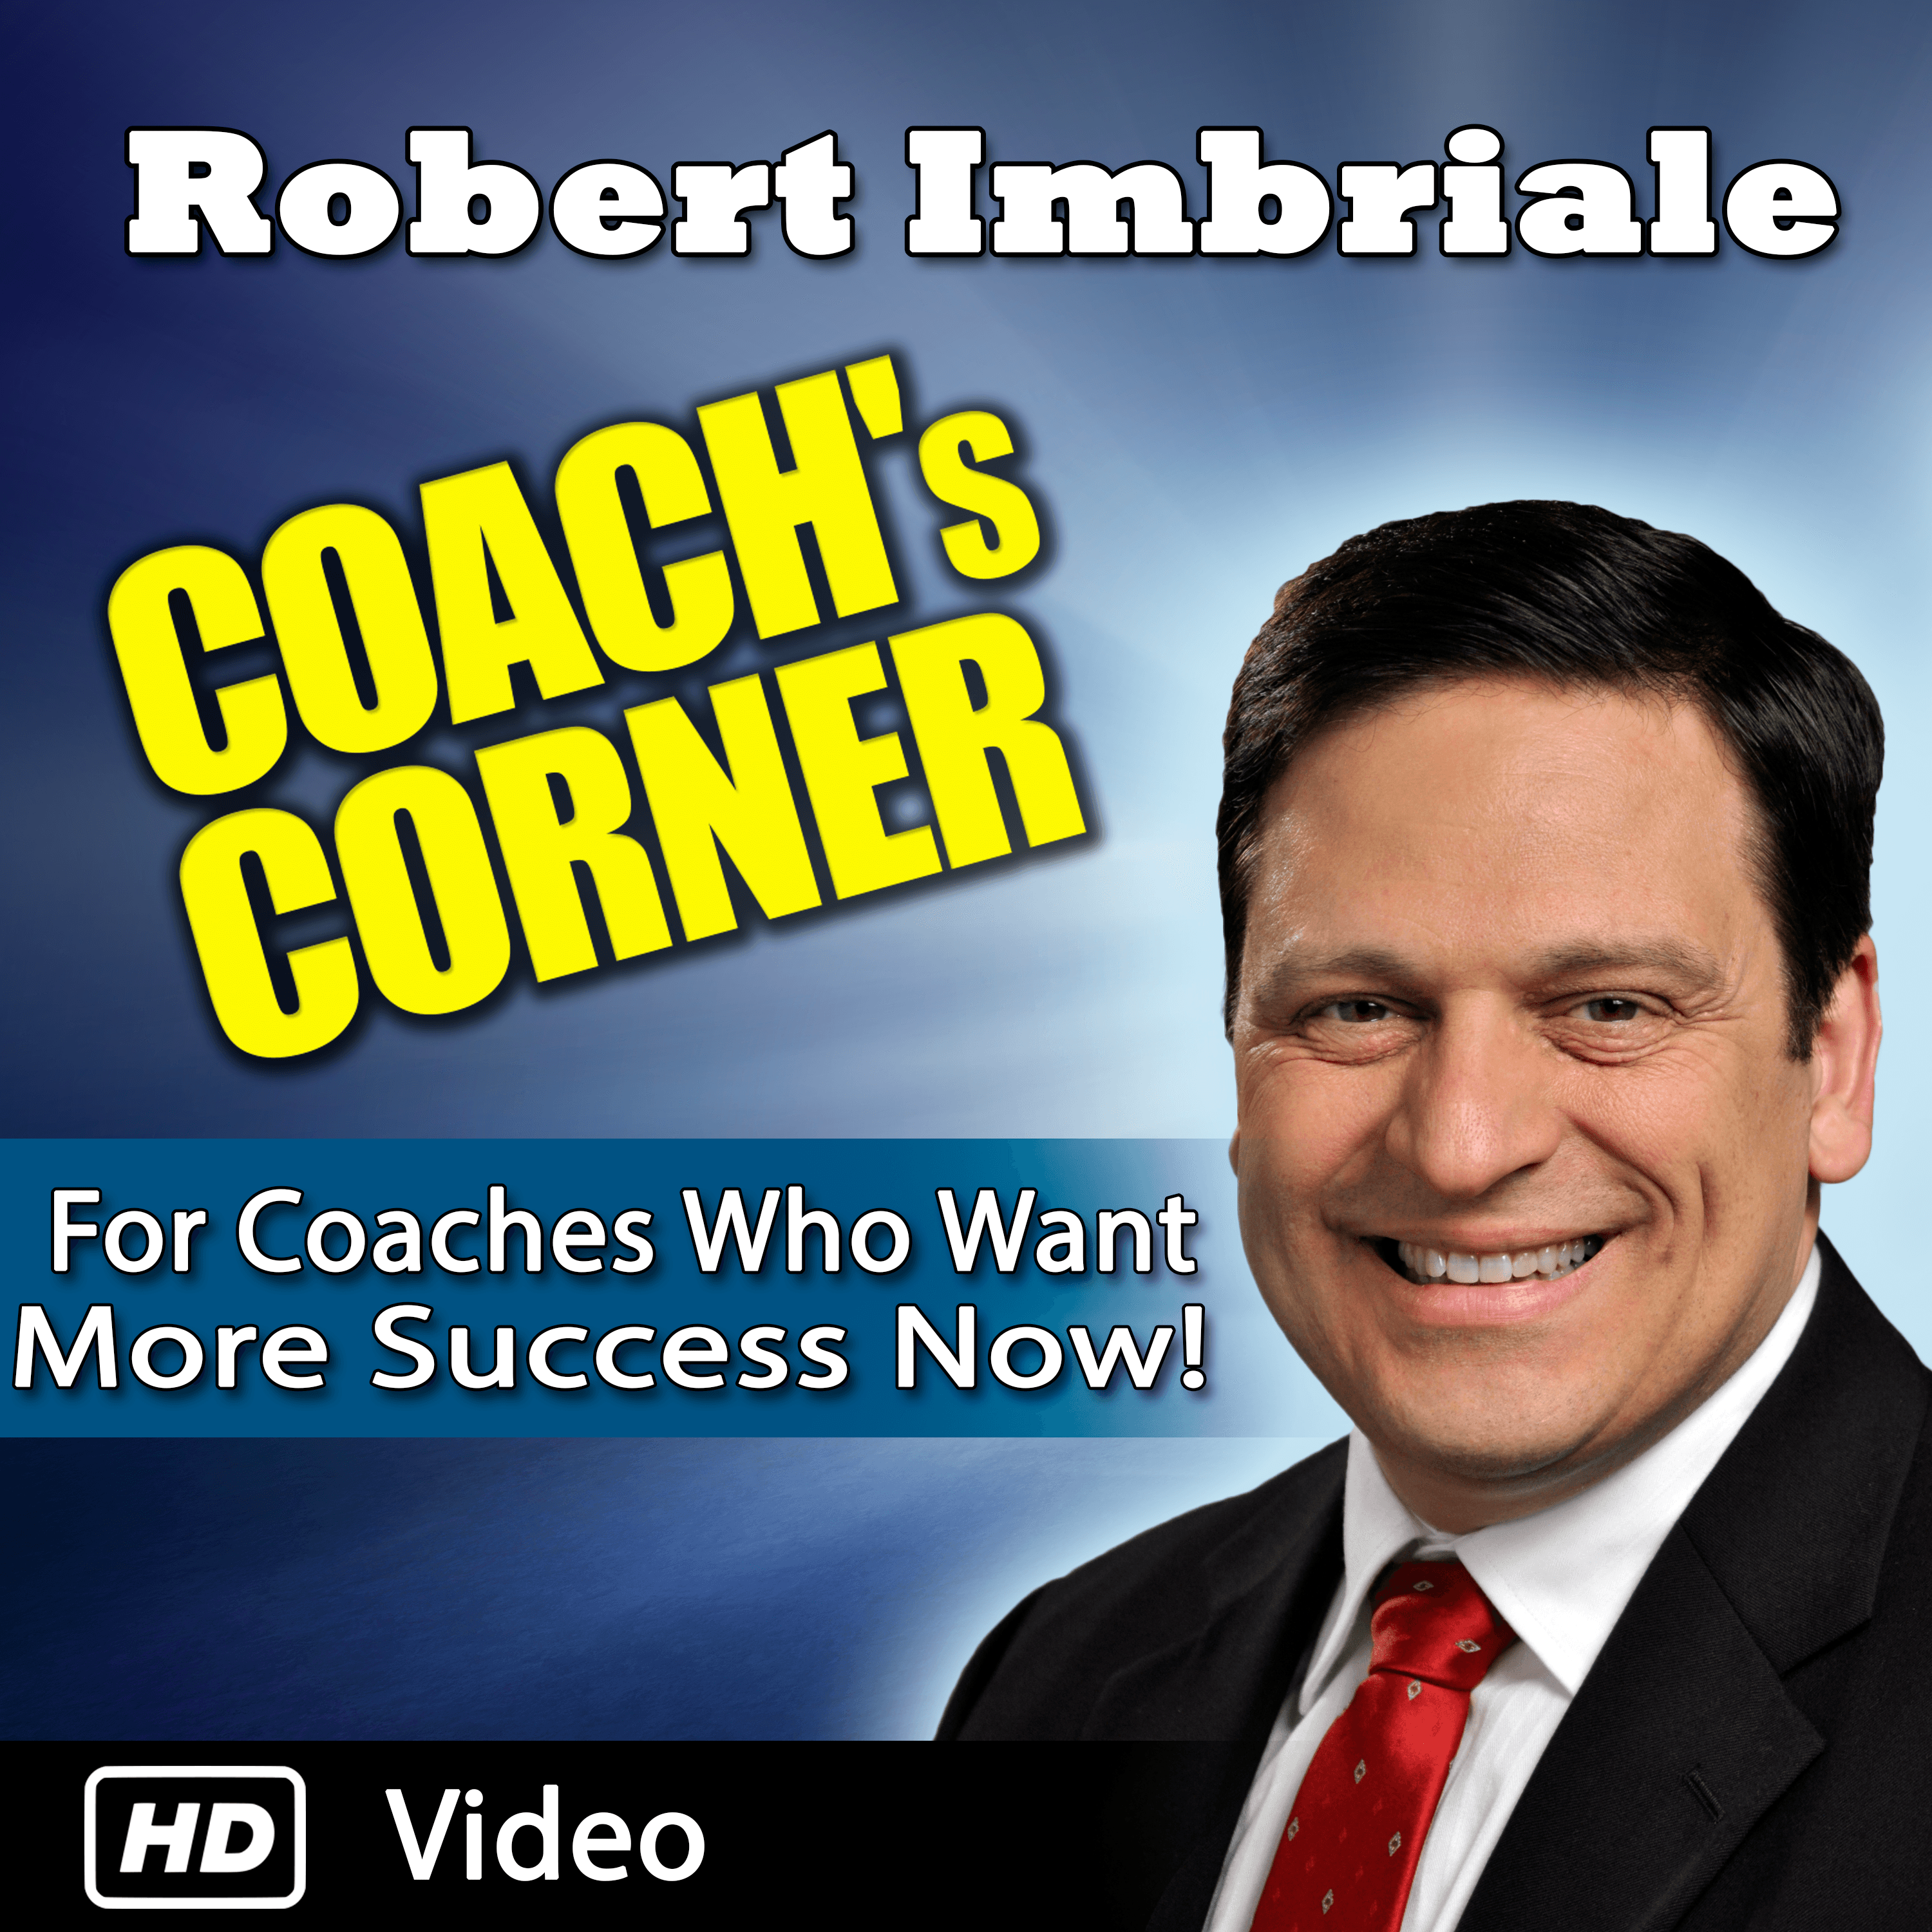 Coach's Corner with Robert Imbriale